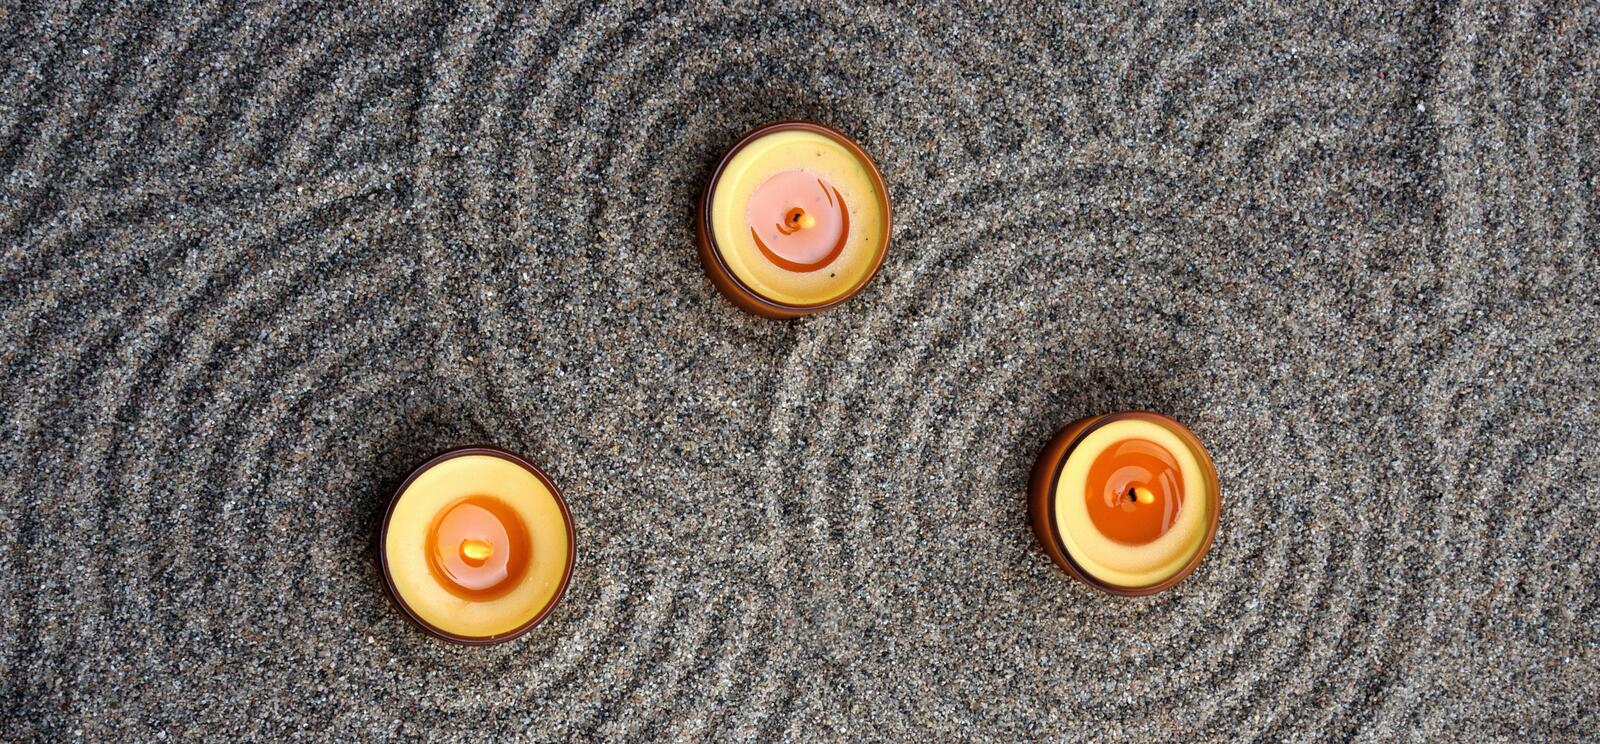 Candles in the sand. Calming patterns on the sand. royalty free stock images